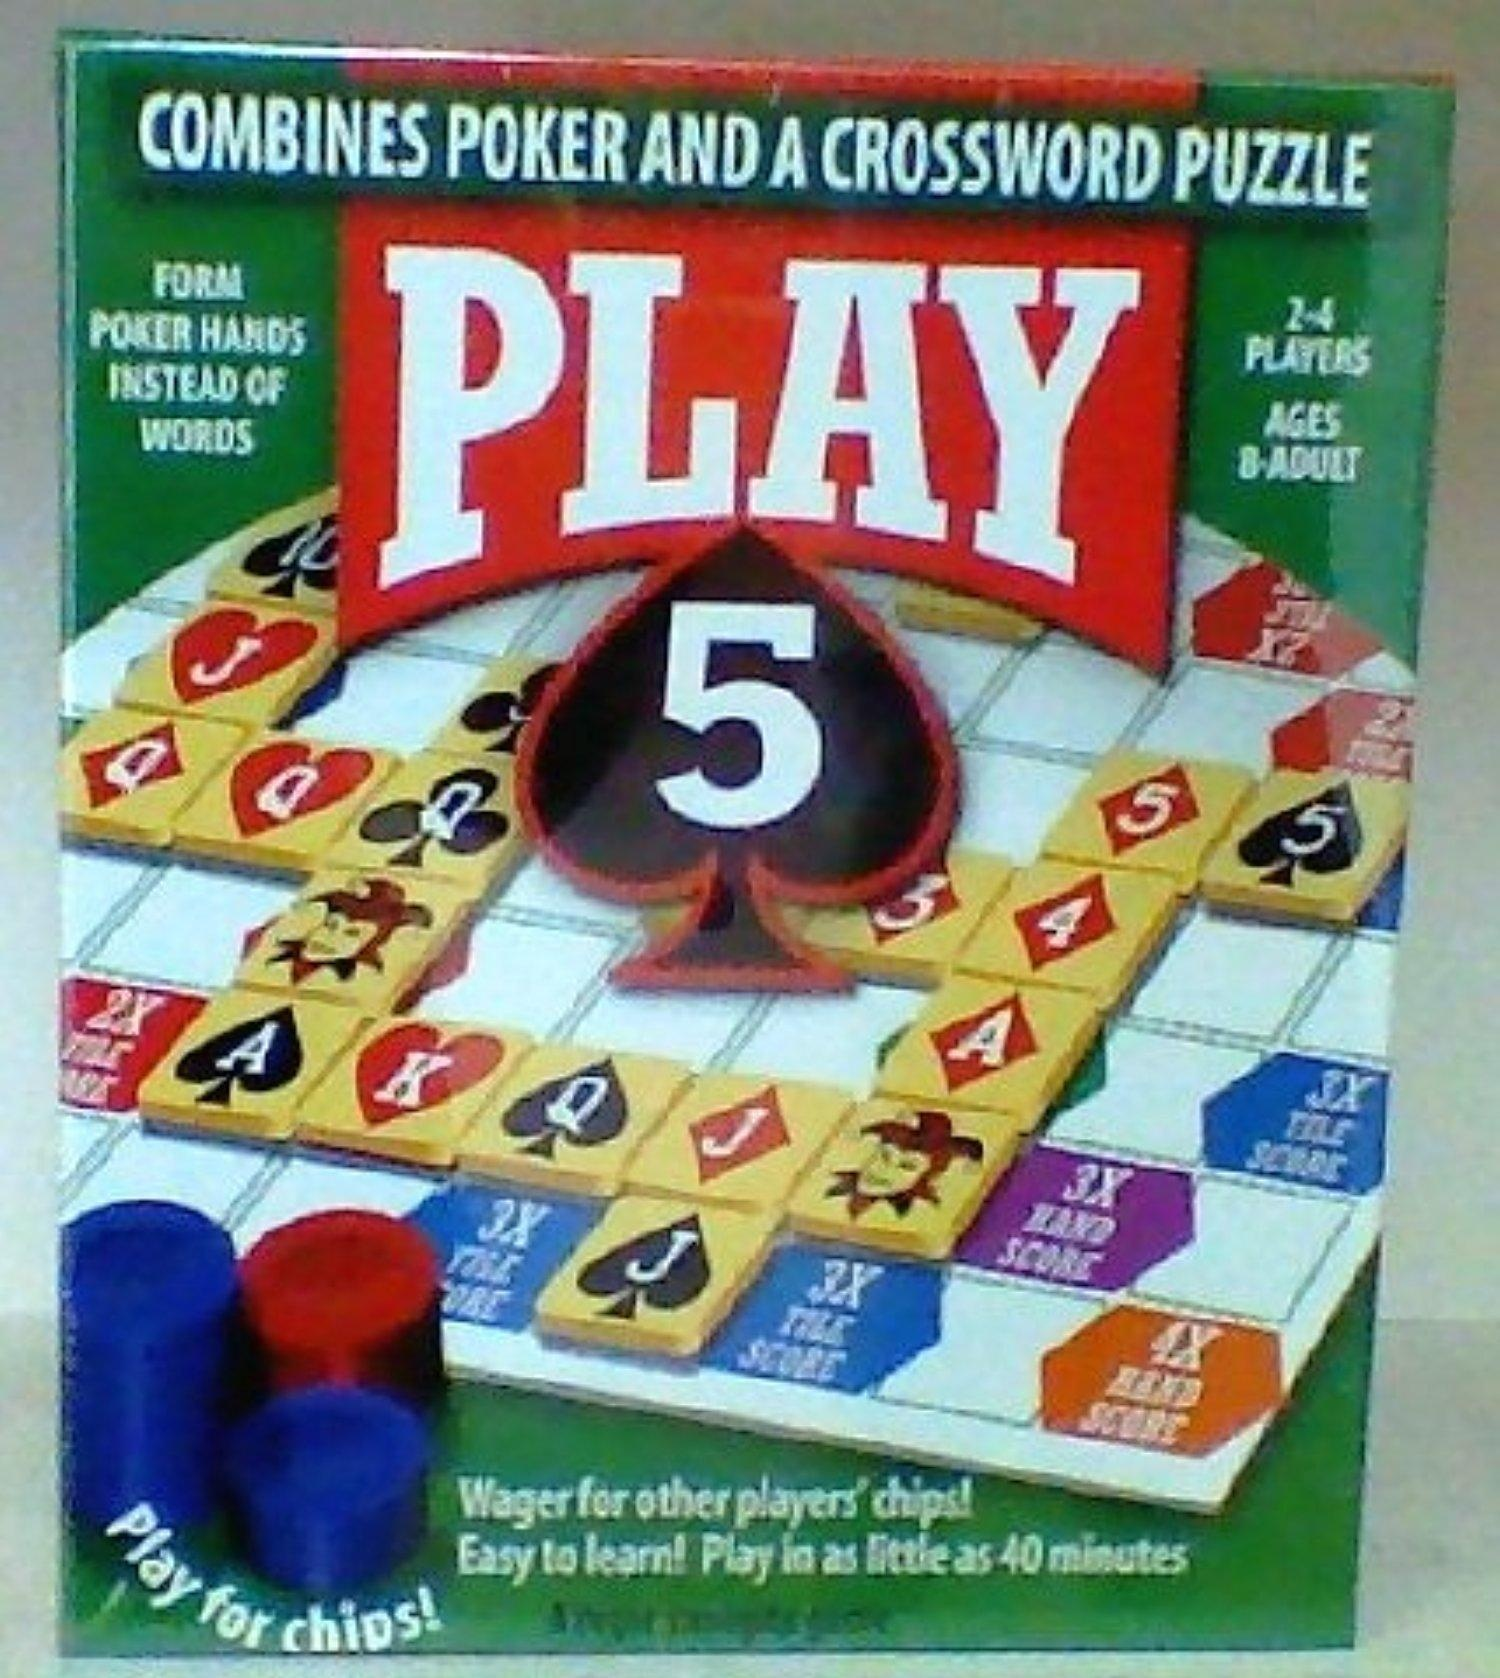 Play 5 by Play 5